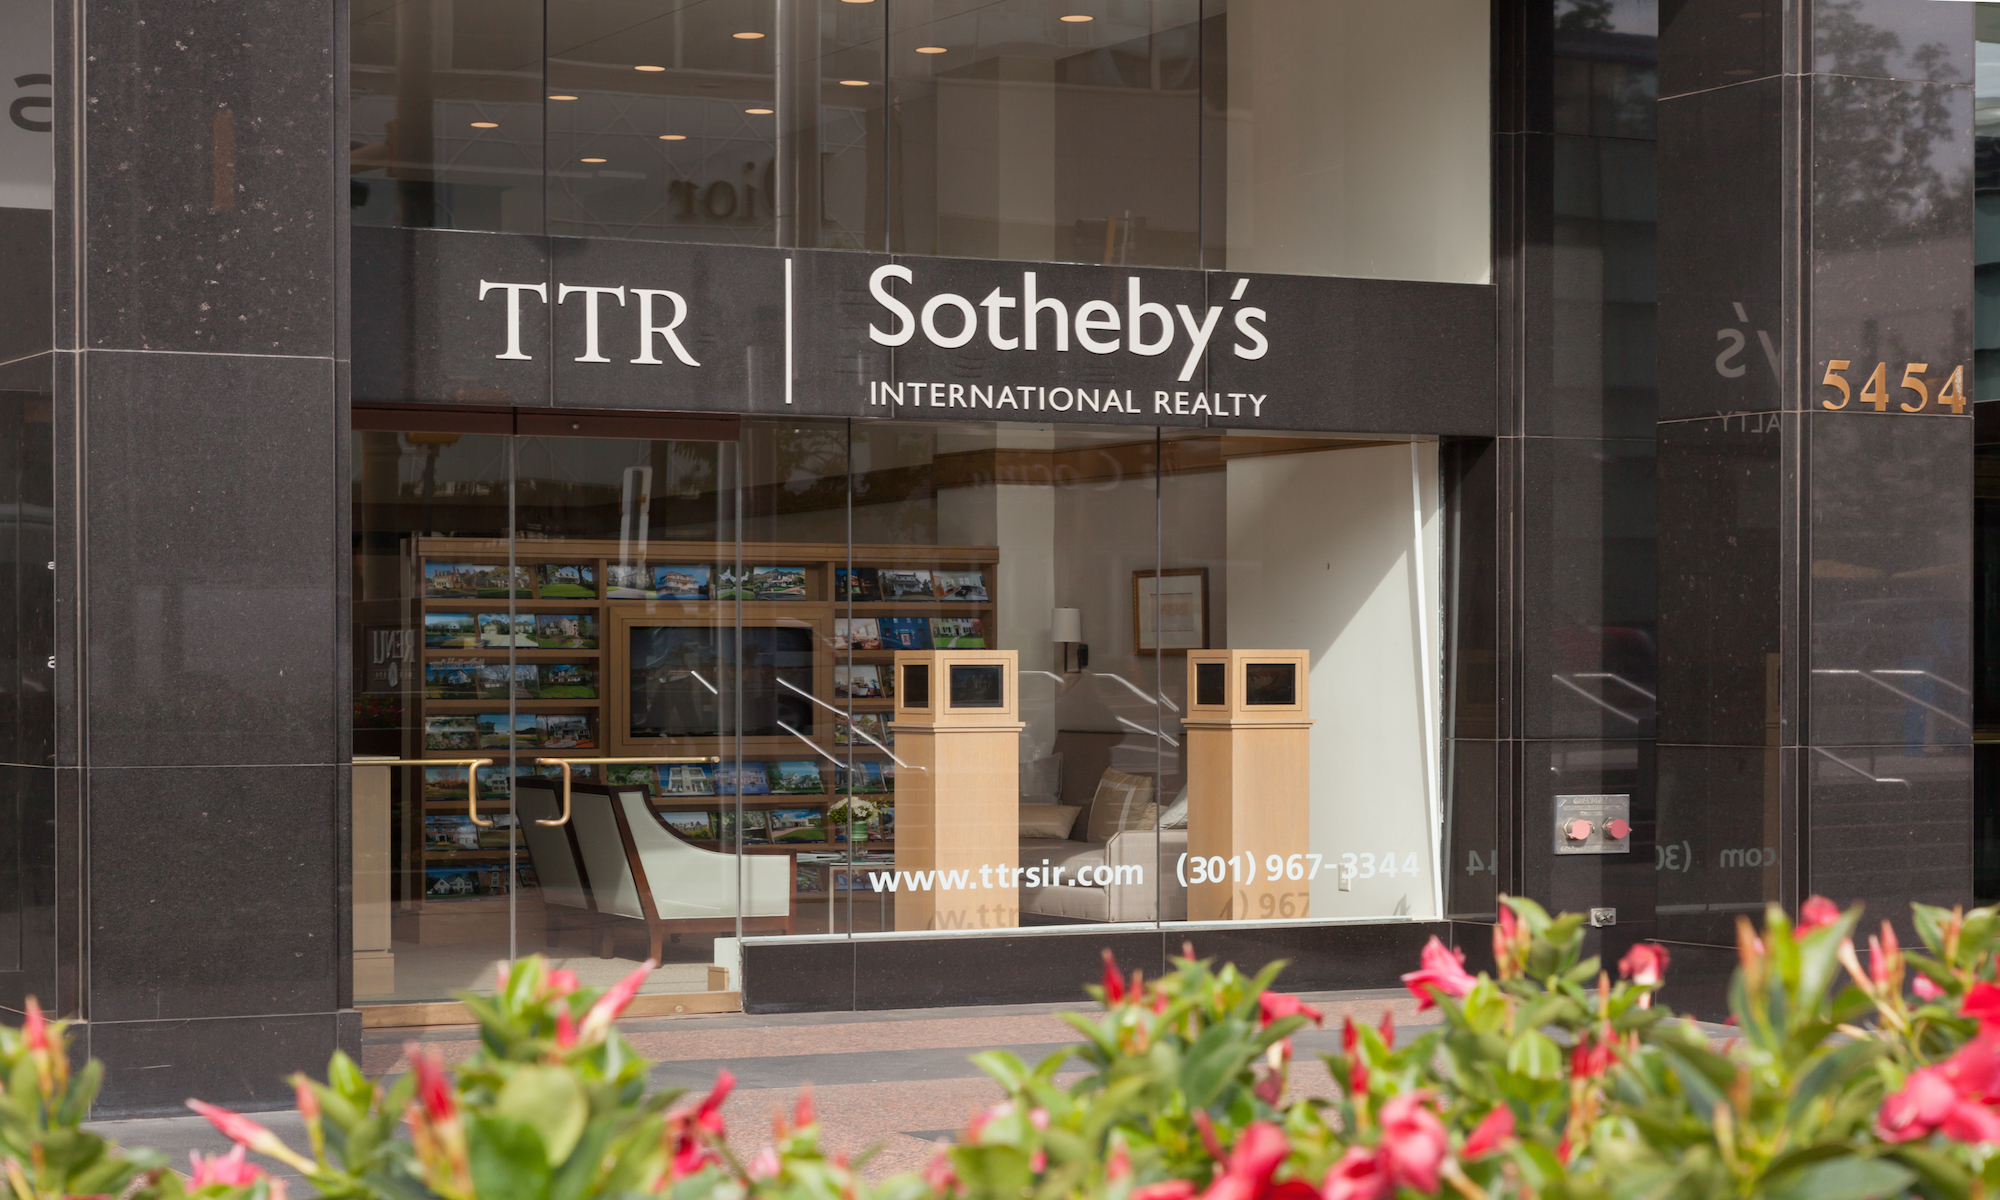 TTR Sotheby's International Realty